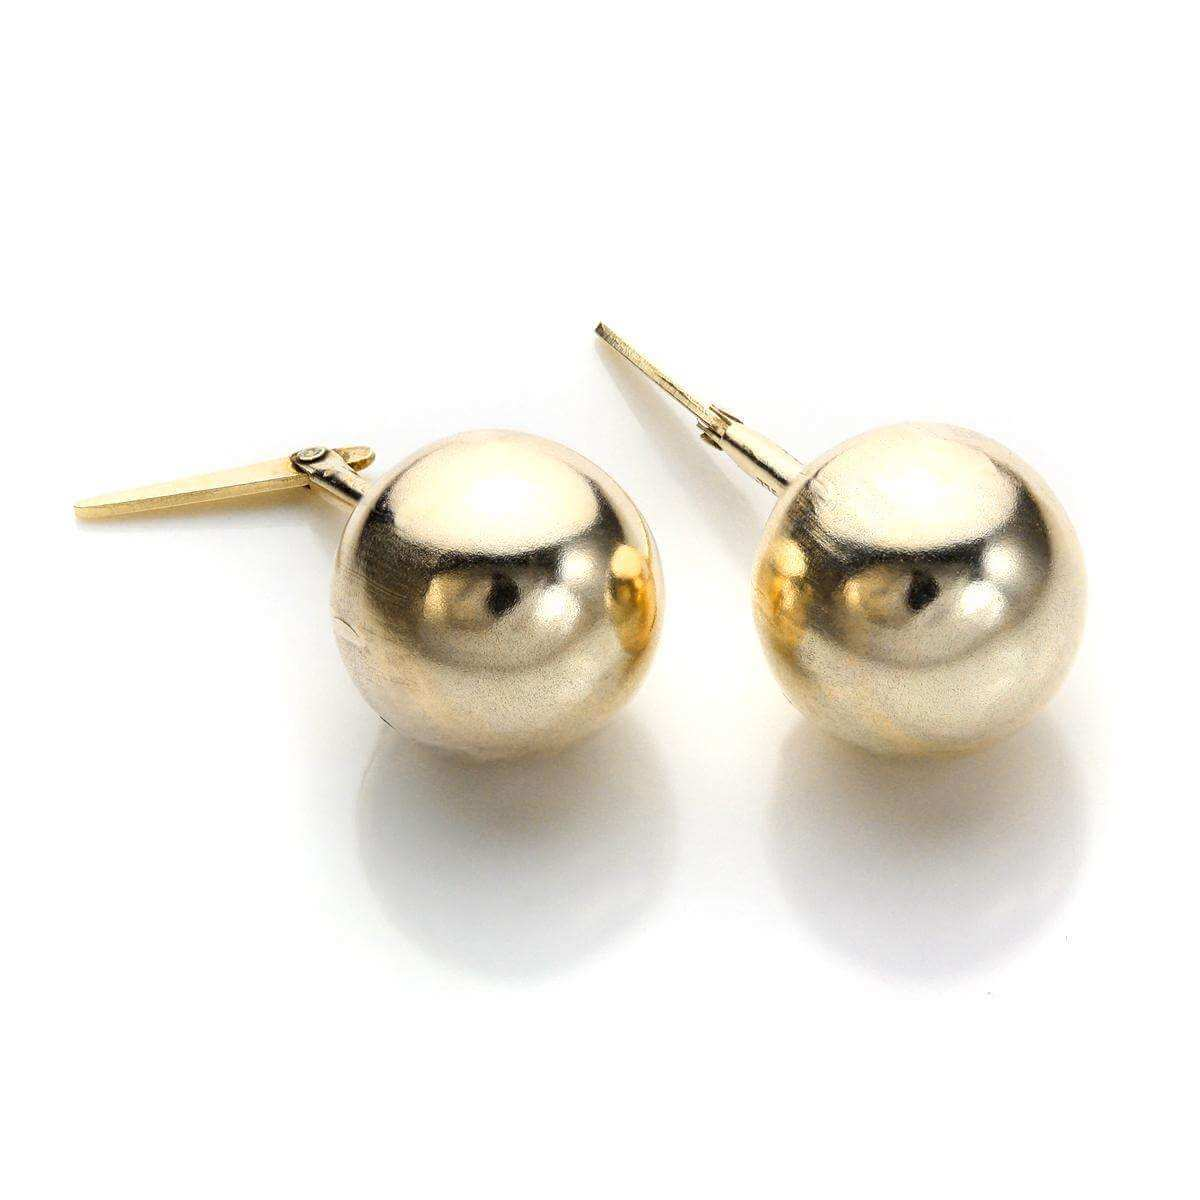 9ct Yellow Gold Andralok 8mm Ball Stud Earrings